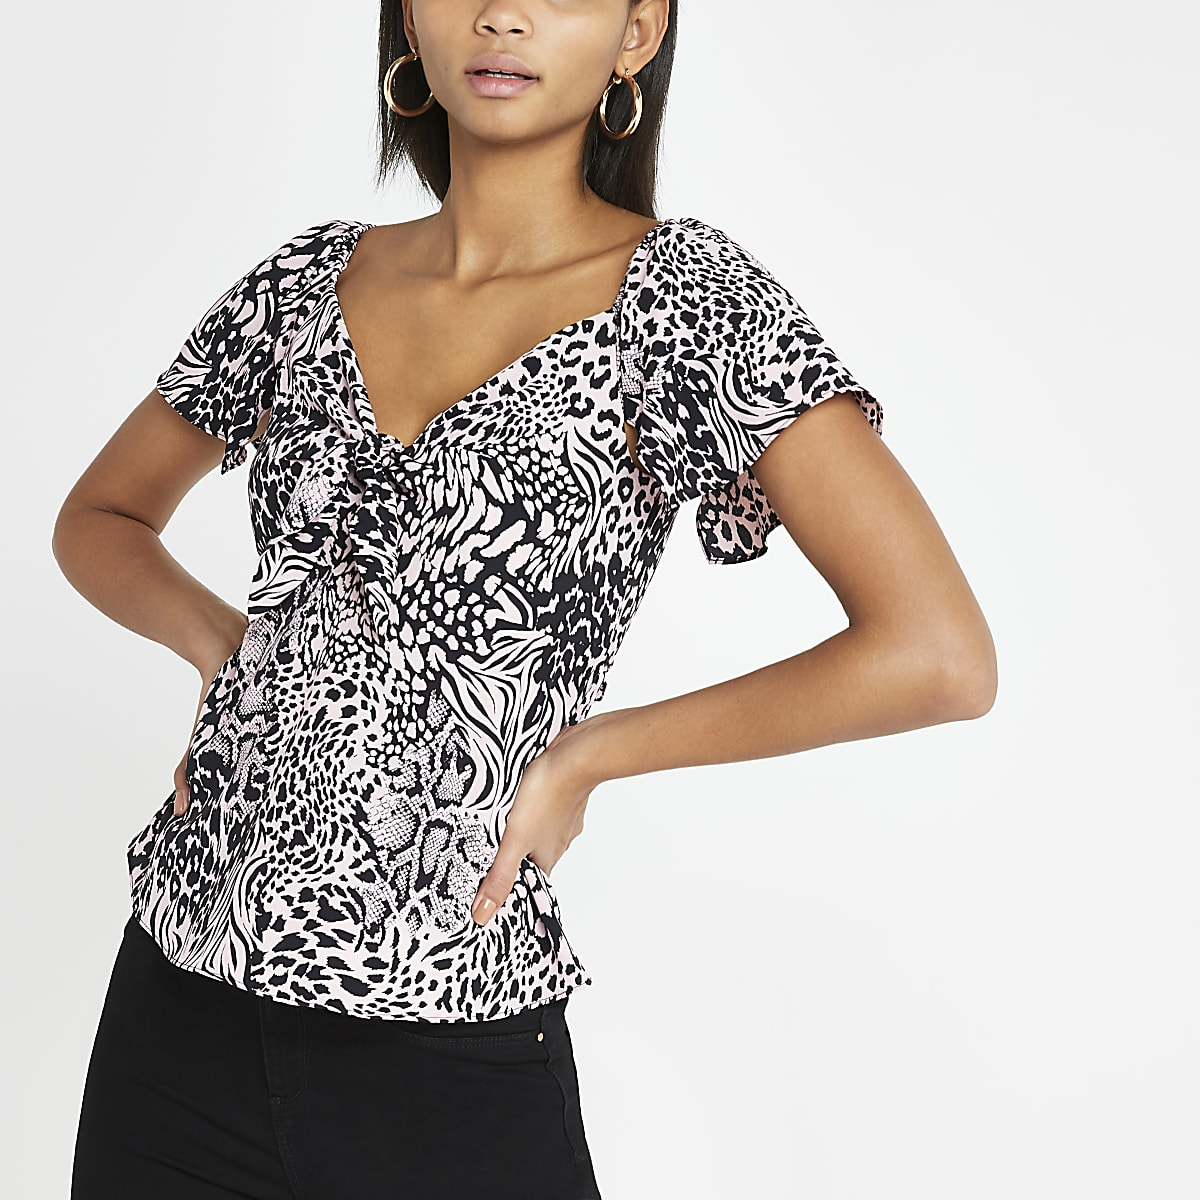 310375f39ace Pink animal print tie front bardot top - Bardot / Cold Shoulder Tops ...